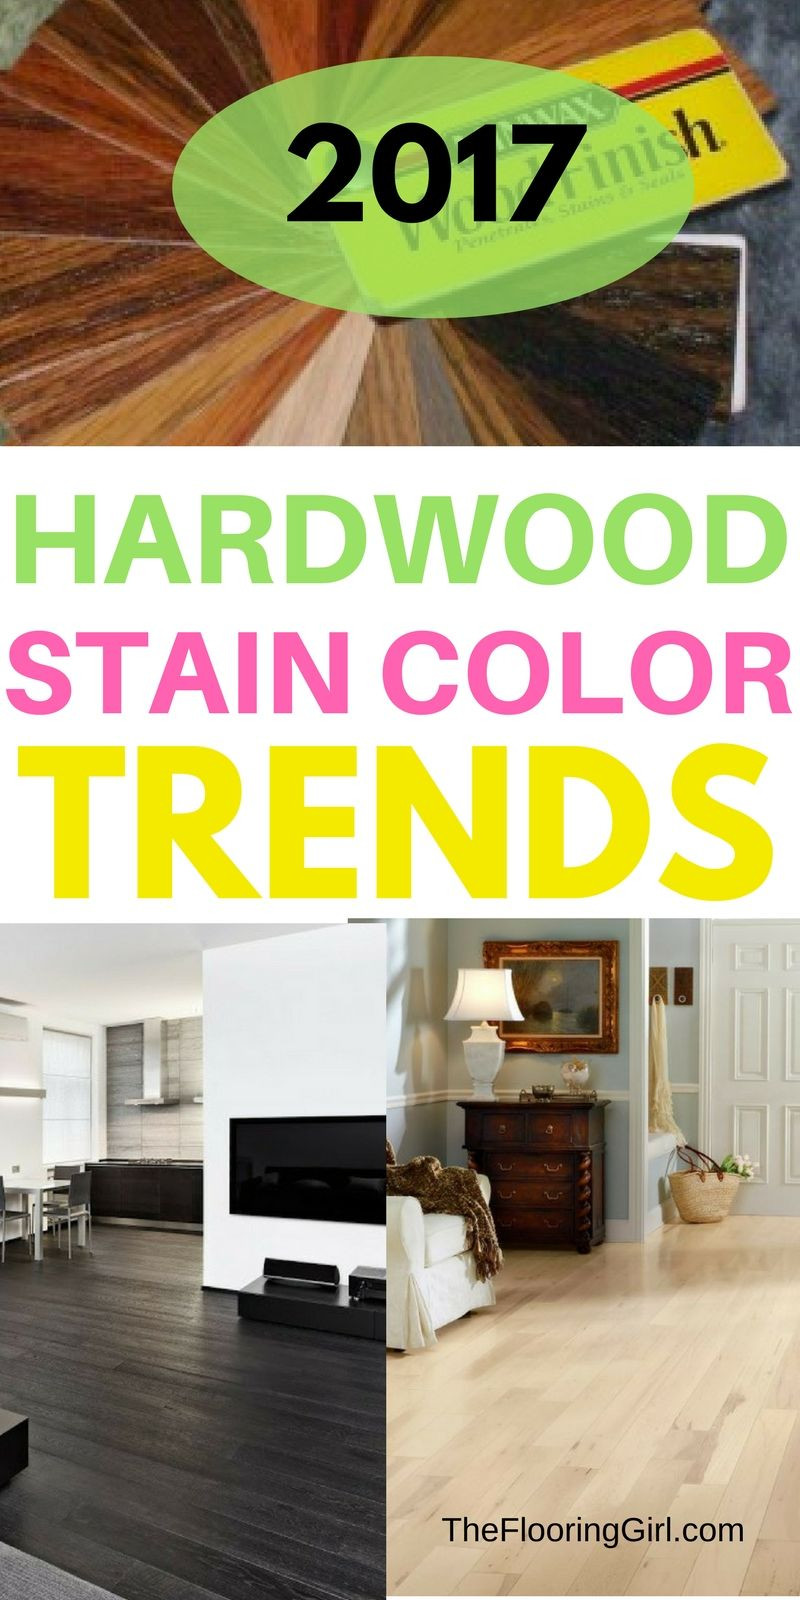 hardwood floors 2018 of hardwood flooring stain color trends 2018 more from the flooring intended for hardwood flooring stain color trends for 2017 hardwood colors that are in style theflooringgirl com